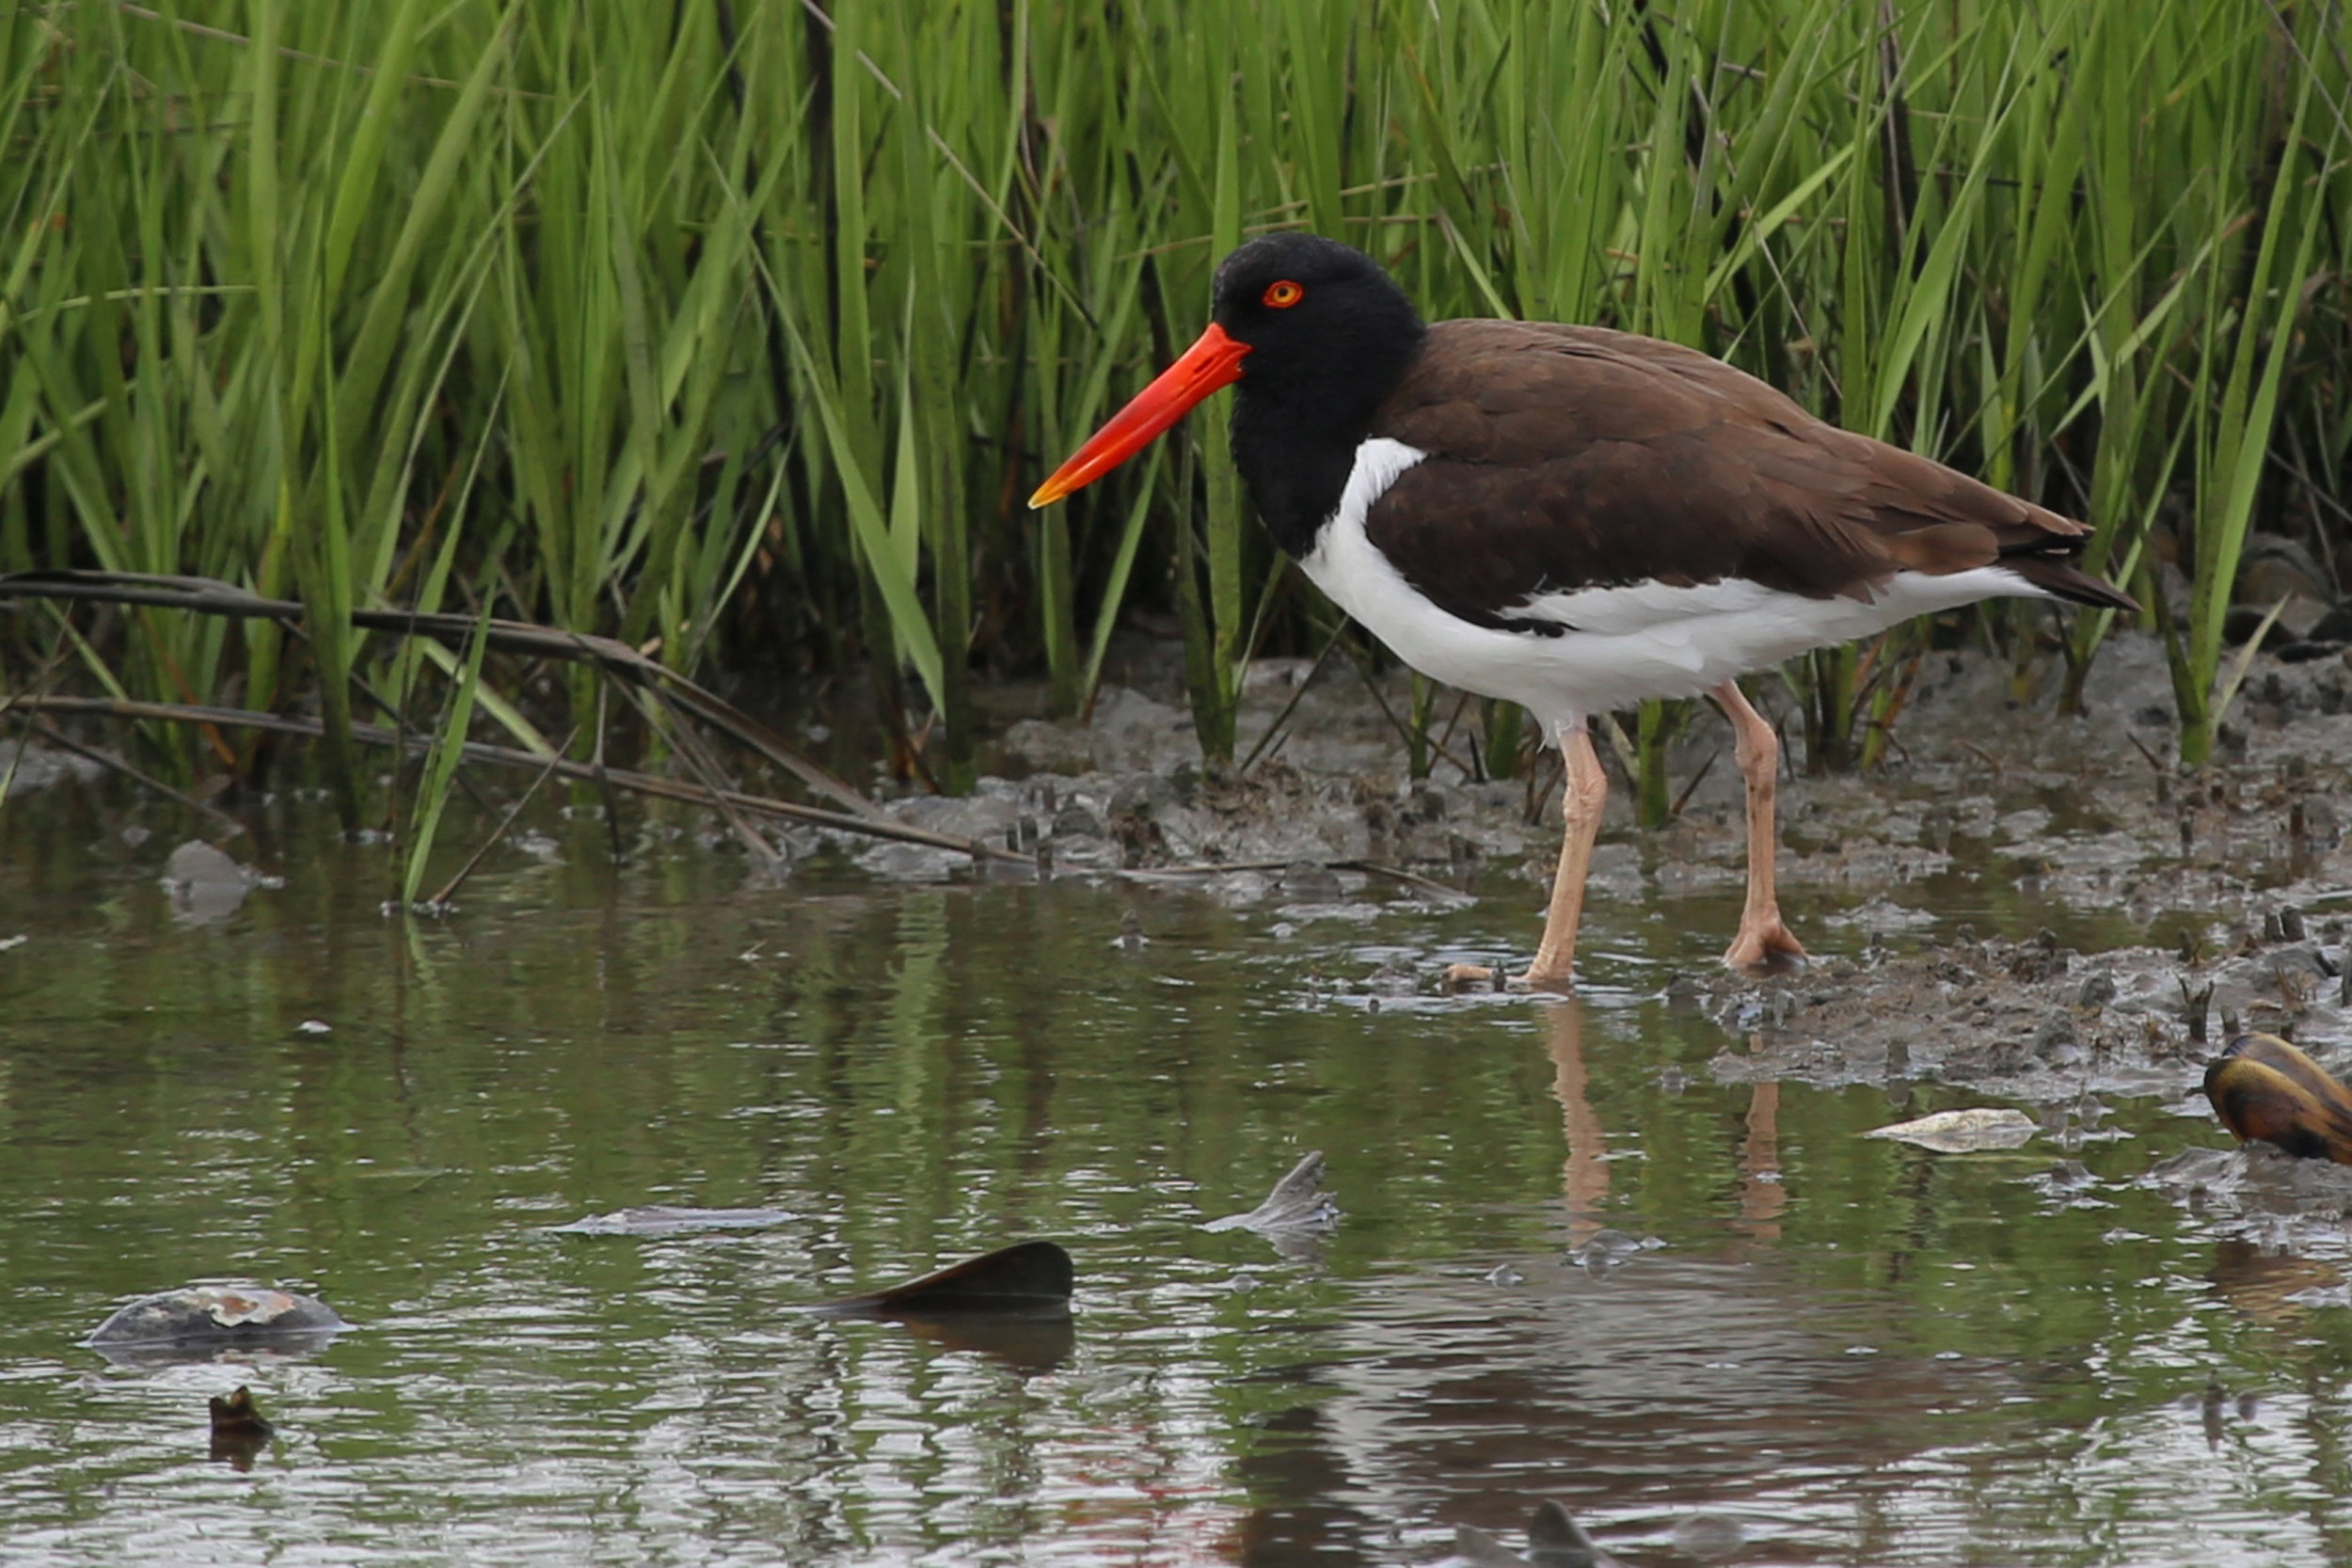 American Oystercatcher at the refuge, photographed May 2013 by Rob Bielawski